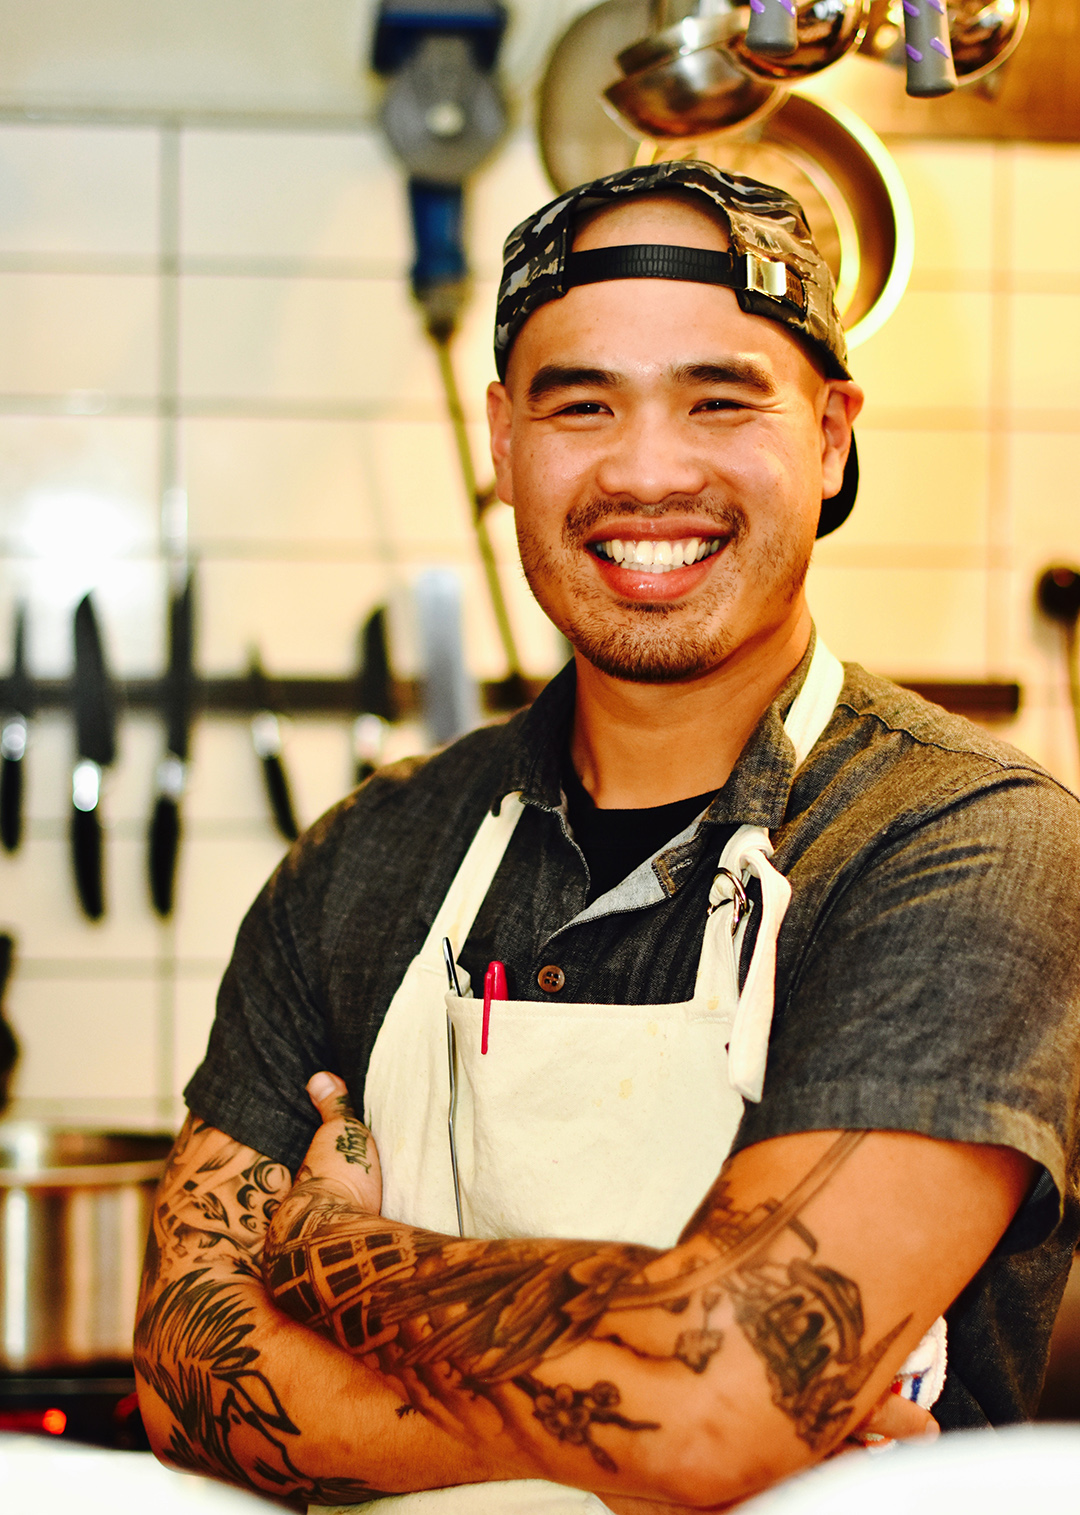 Chef Tu David Phu, and yes he's just as friendly as his huge smile suggests.